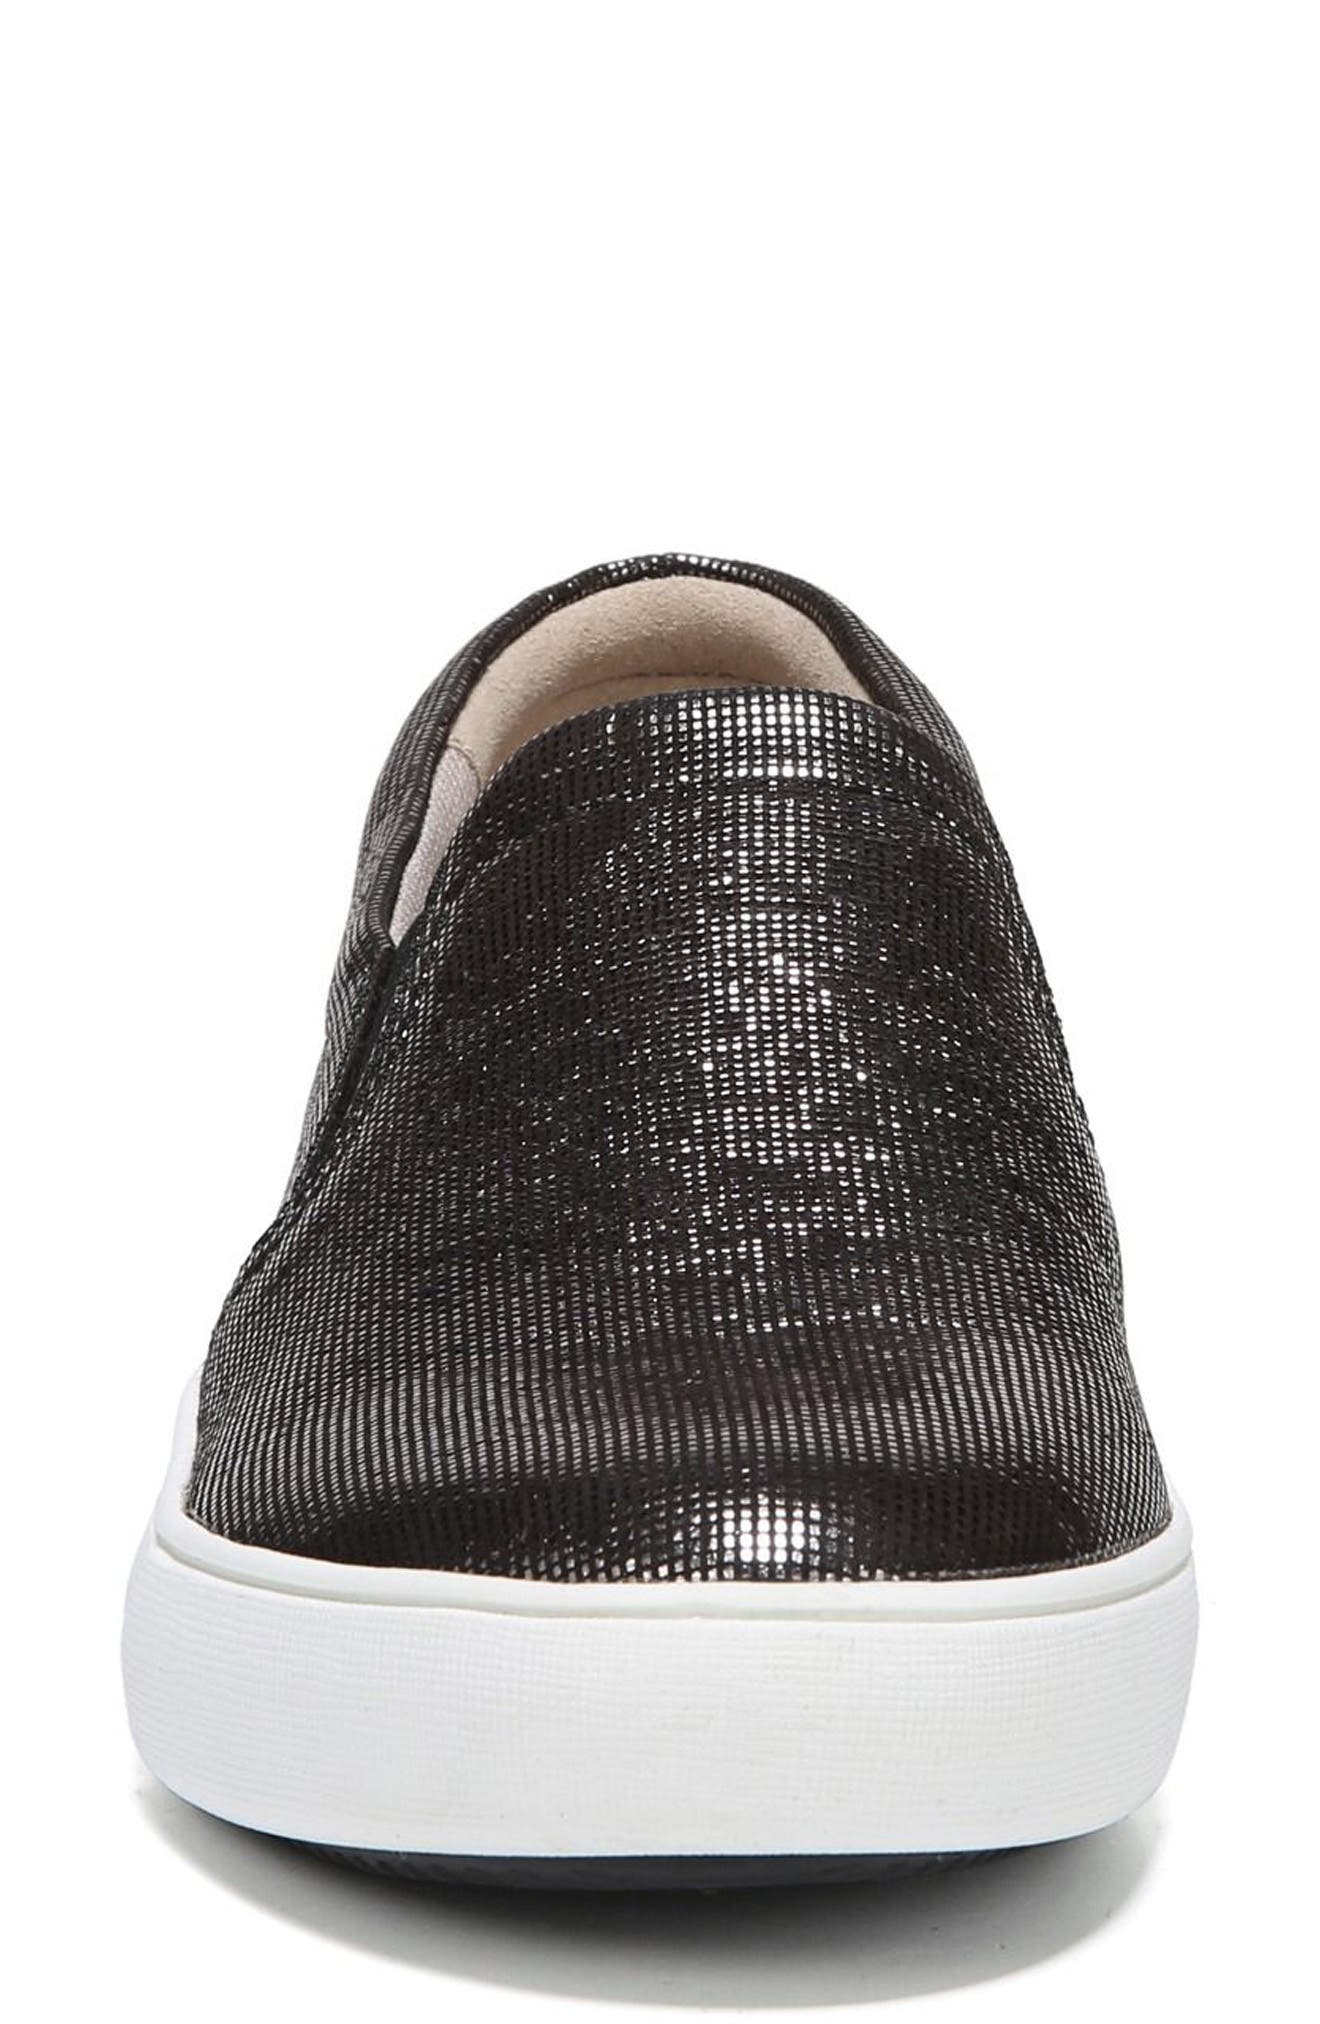 Marianne Slip-On Sneaker,                             Alternate thumbnail 4, color,                             DEEP SILVER PRINTED LEATHER